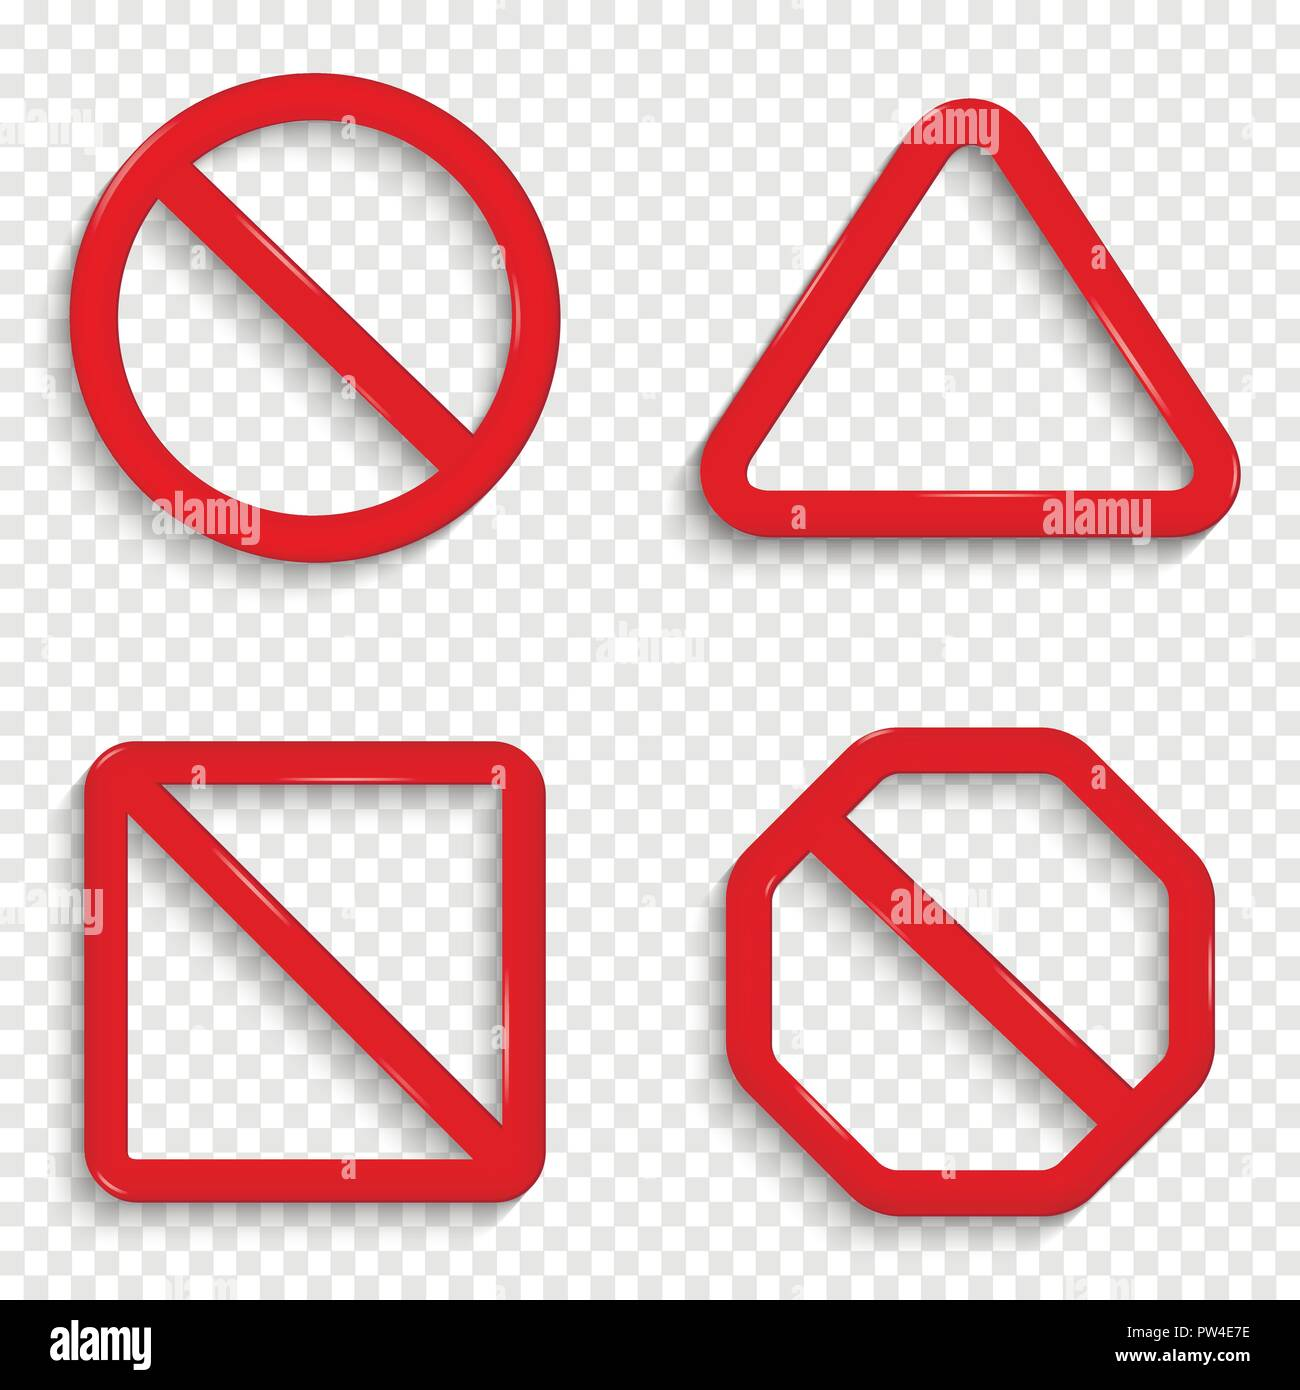 No signs. Forbidden red signs isolated on transparent background. - Stock Image